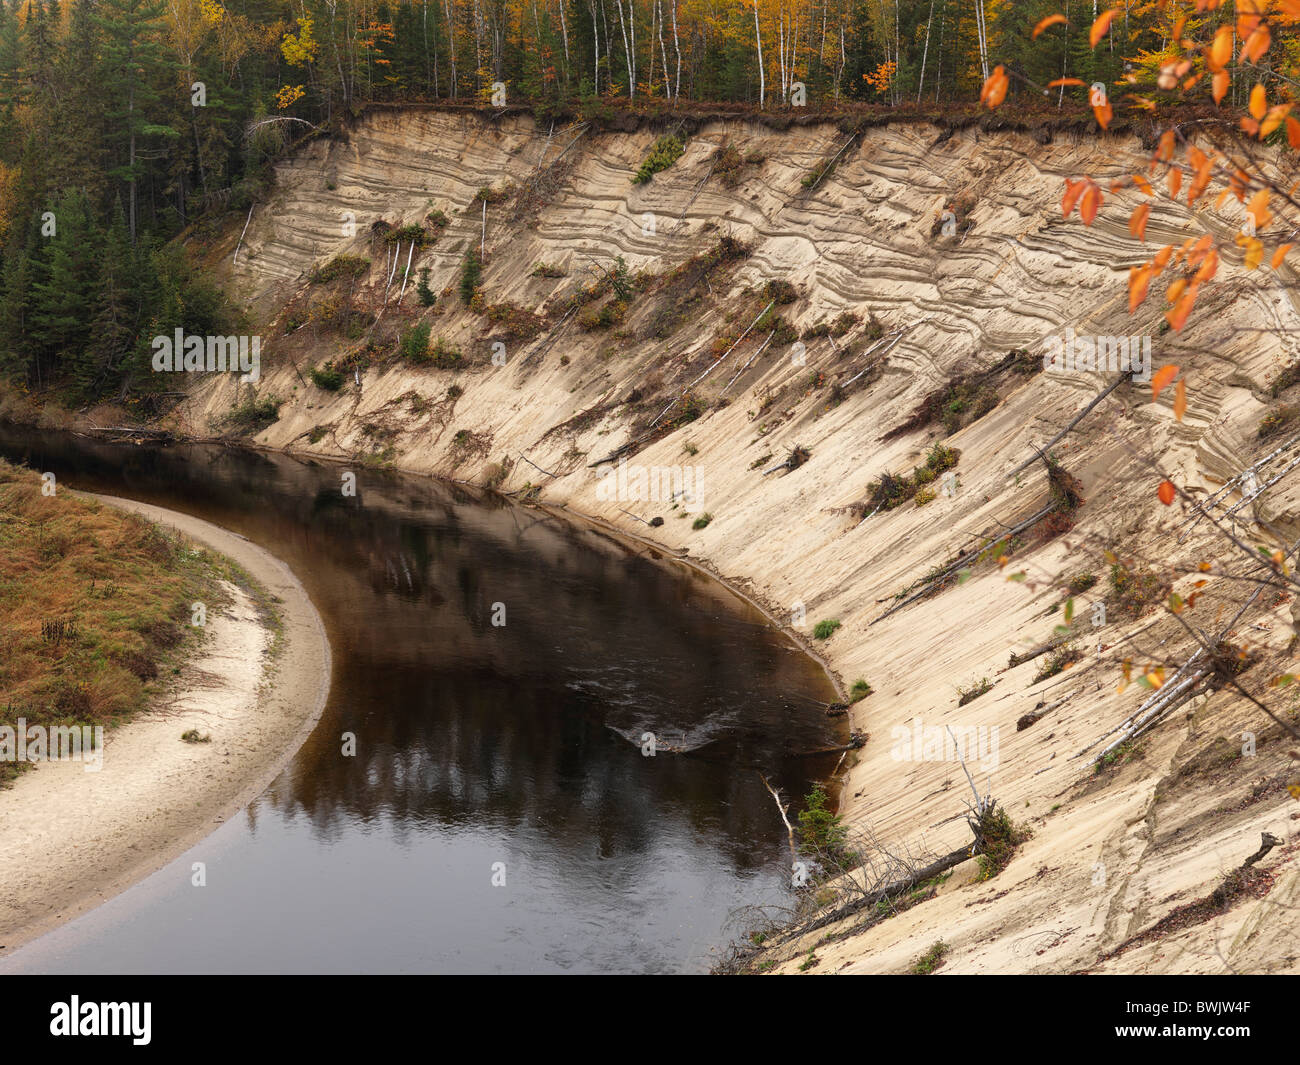 Erosion of a bank on a bend of Big East River. Arrowhead provincial park, Ontario, Canada. - Stock Image